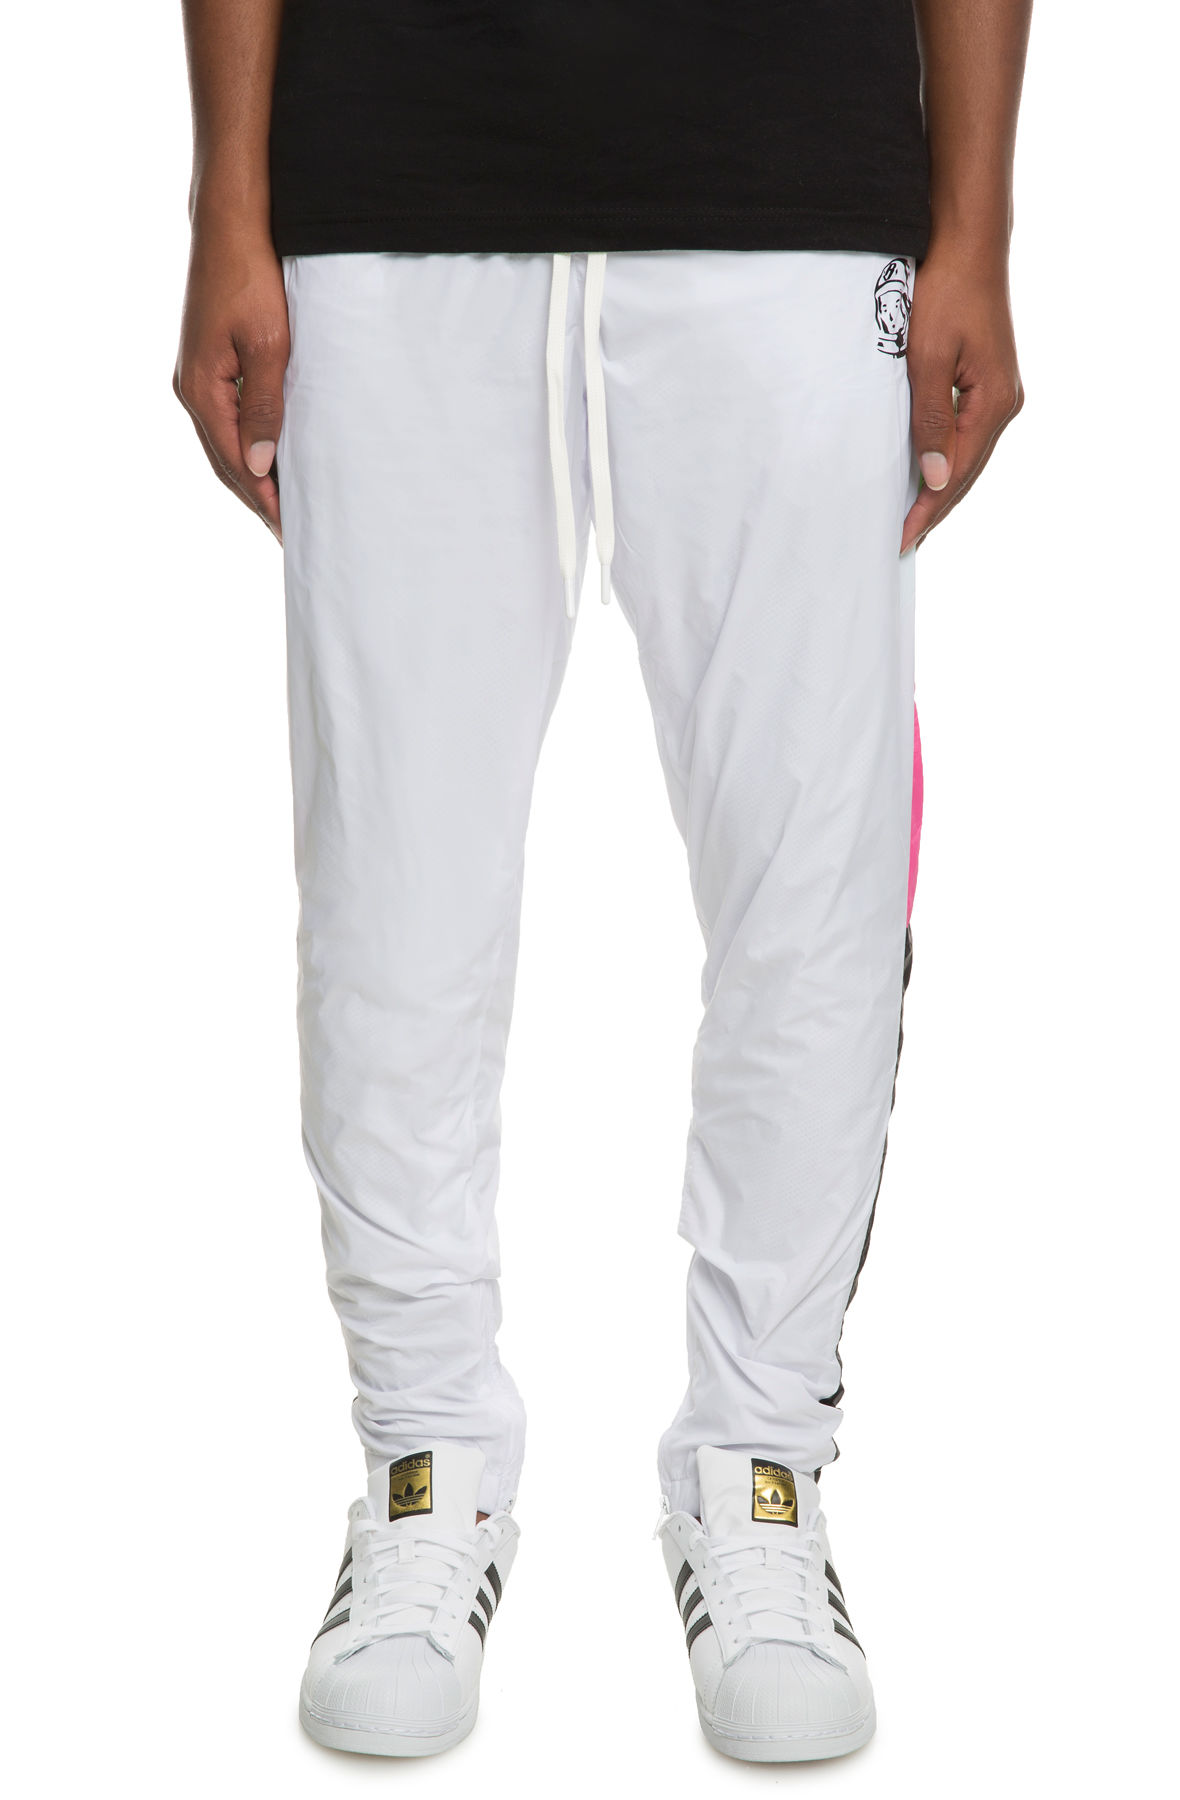 The Breaks Pant in White